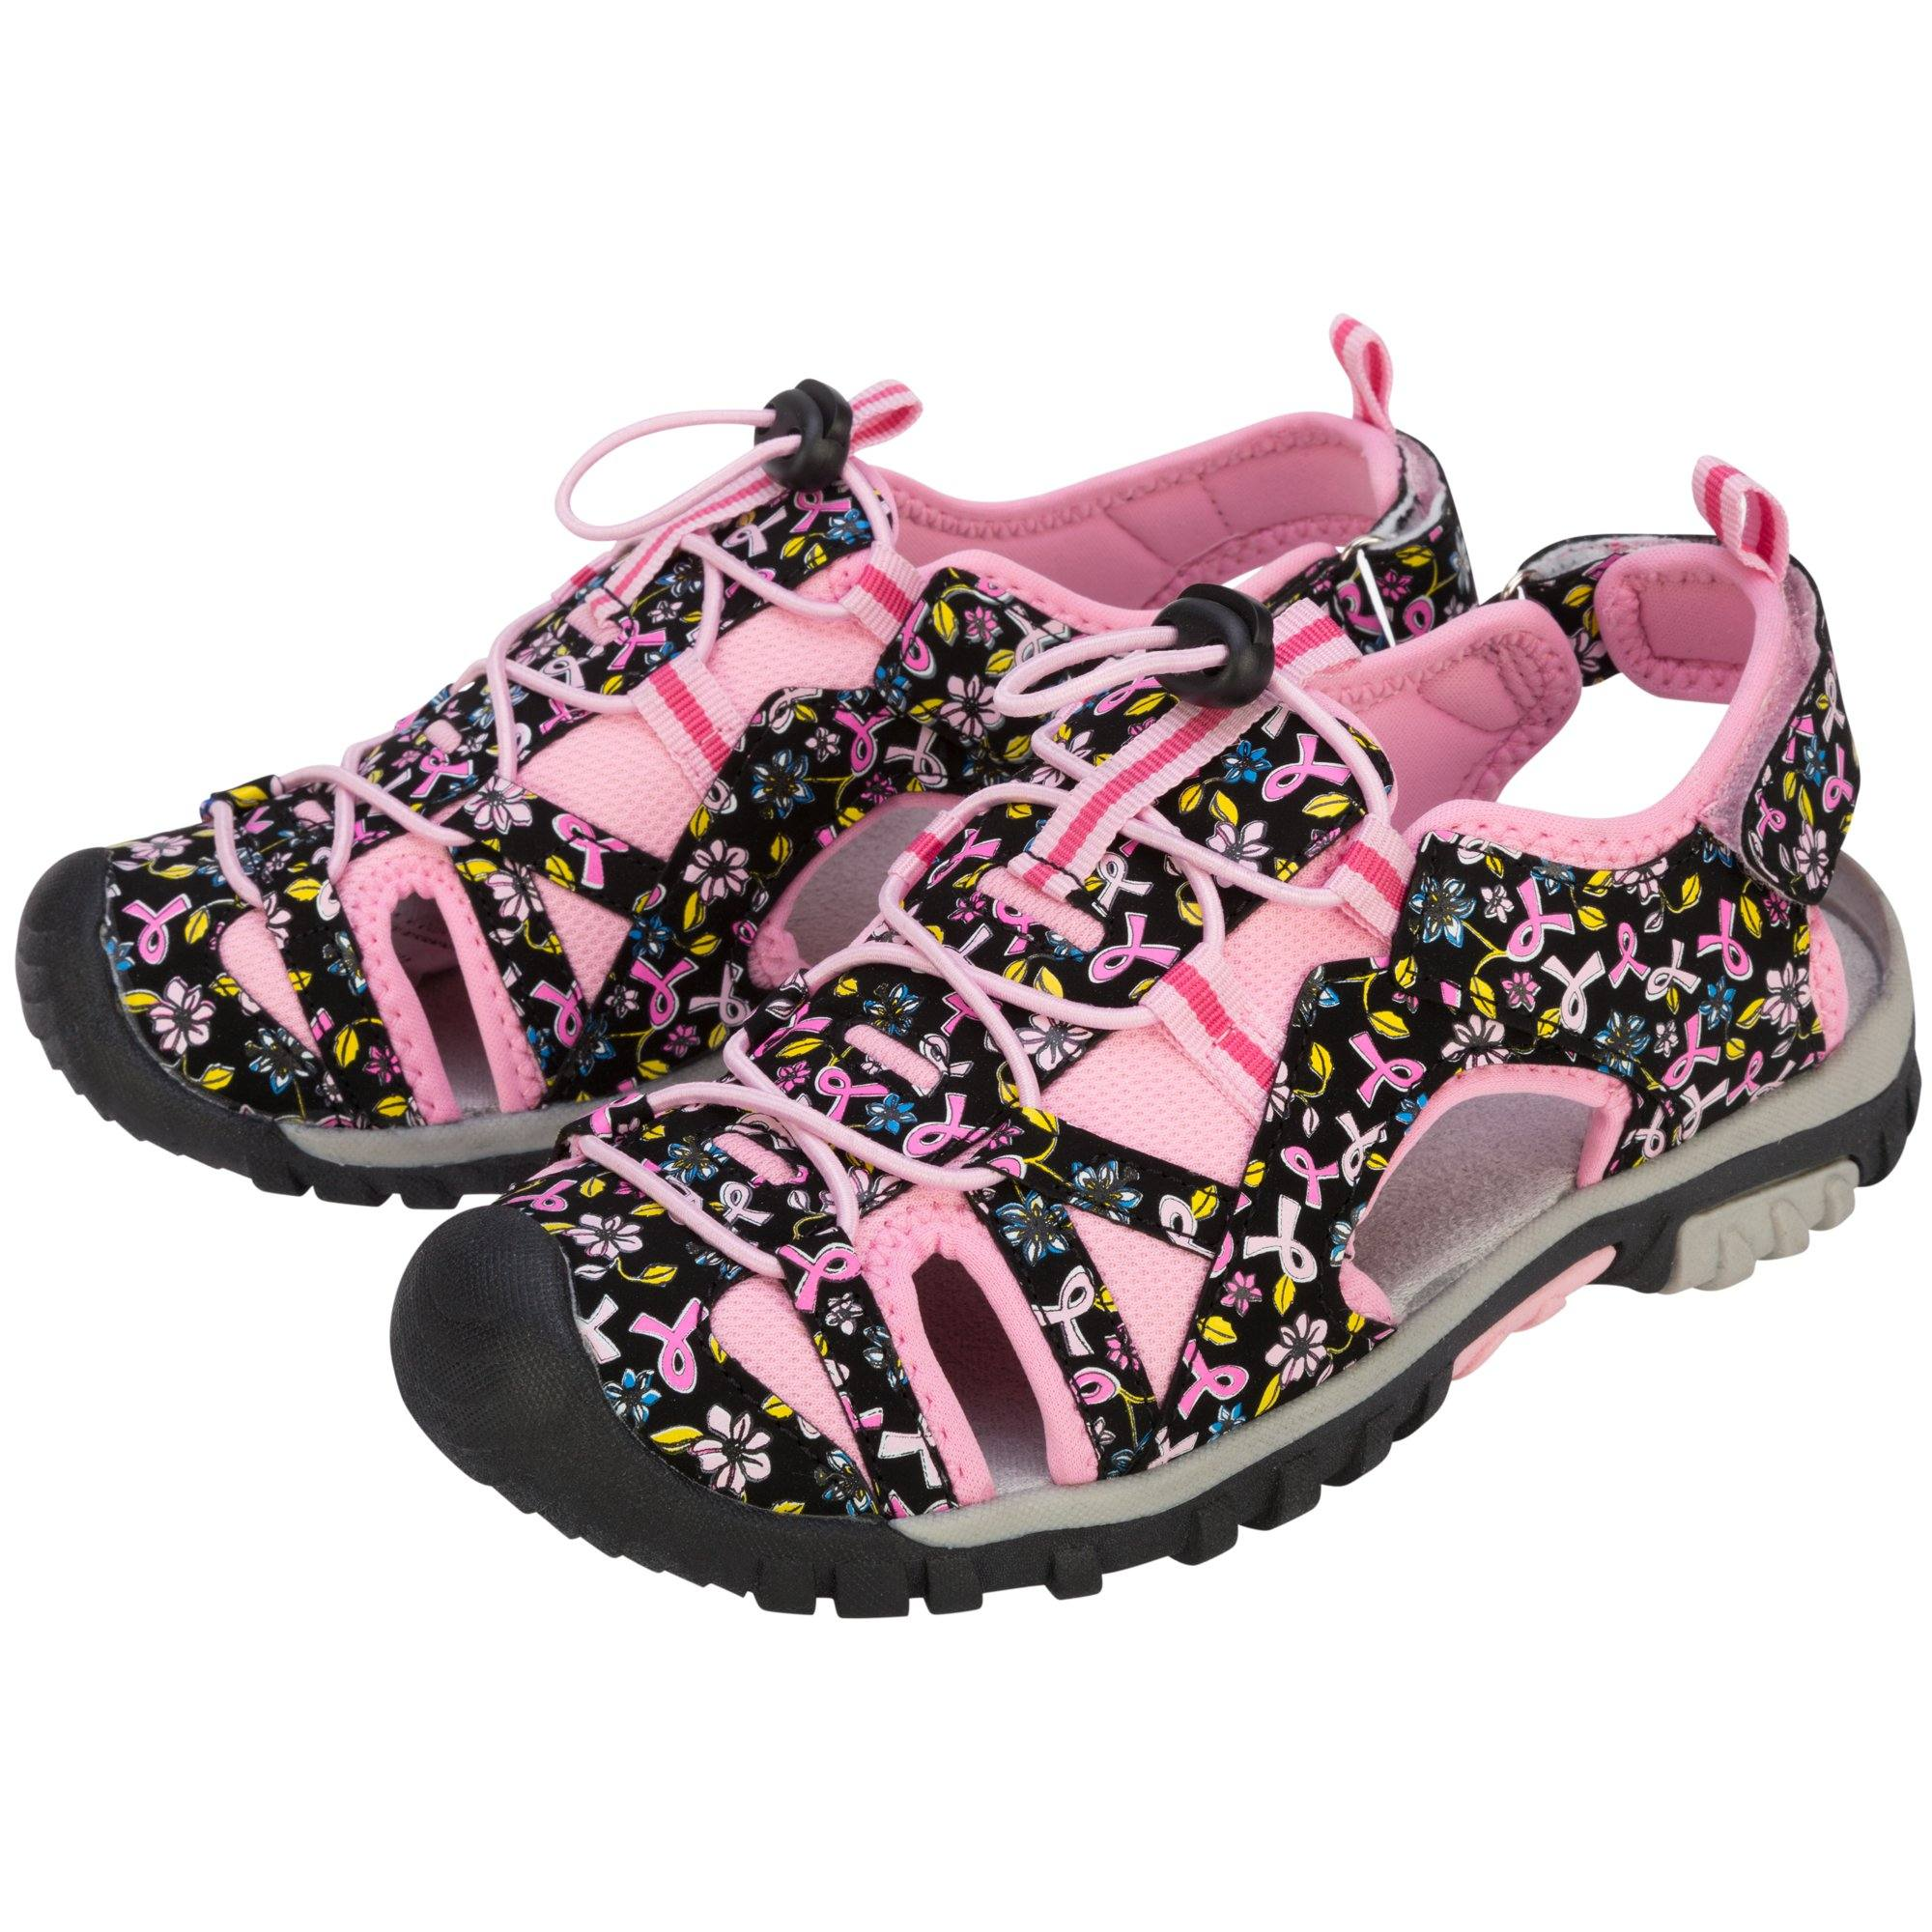 Walk in Pink Sport Sandals | The Breast